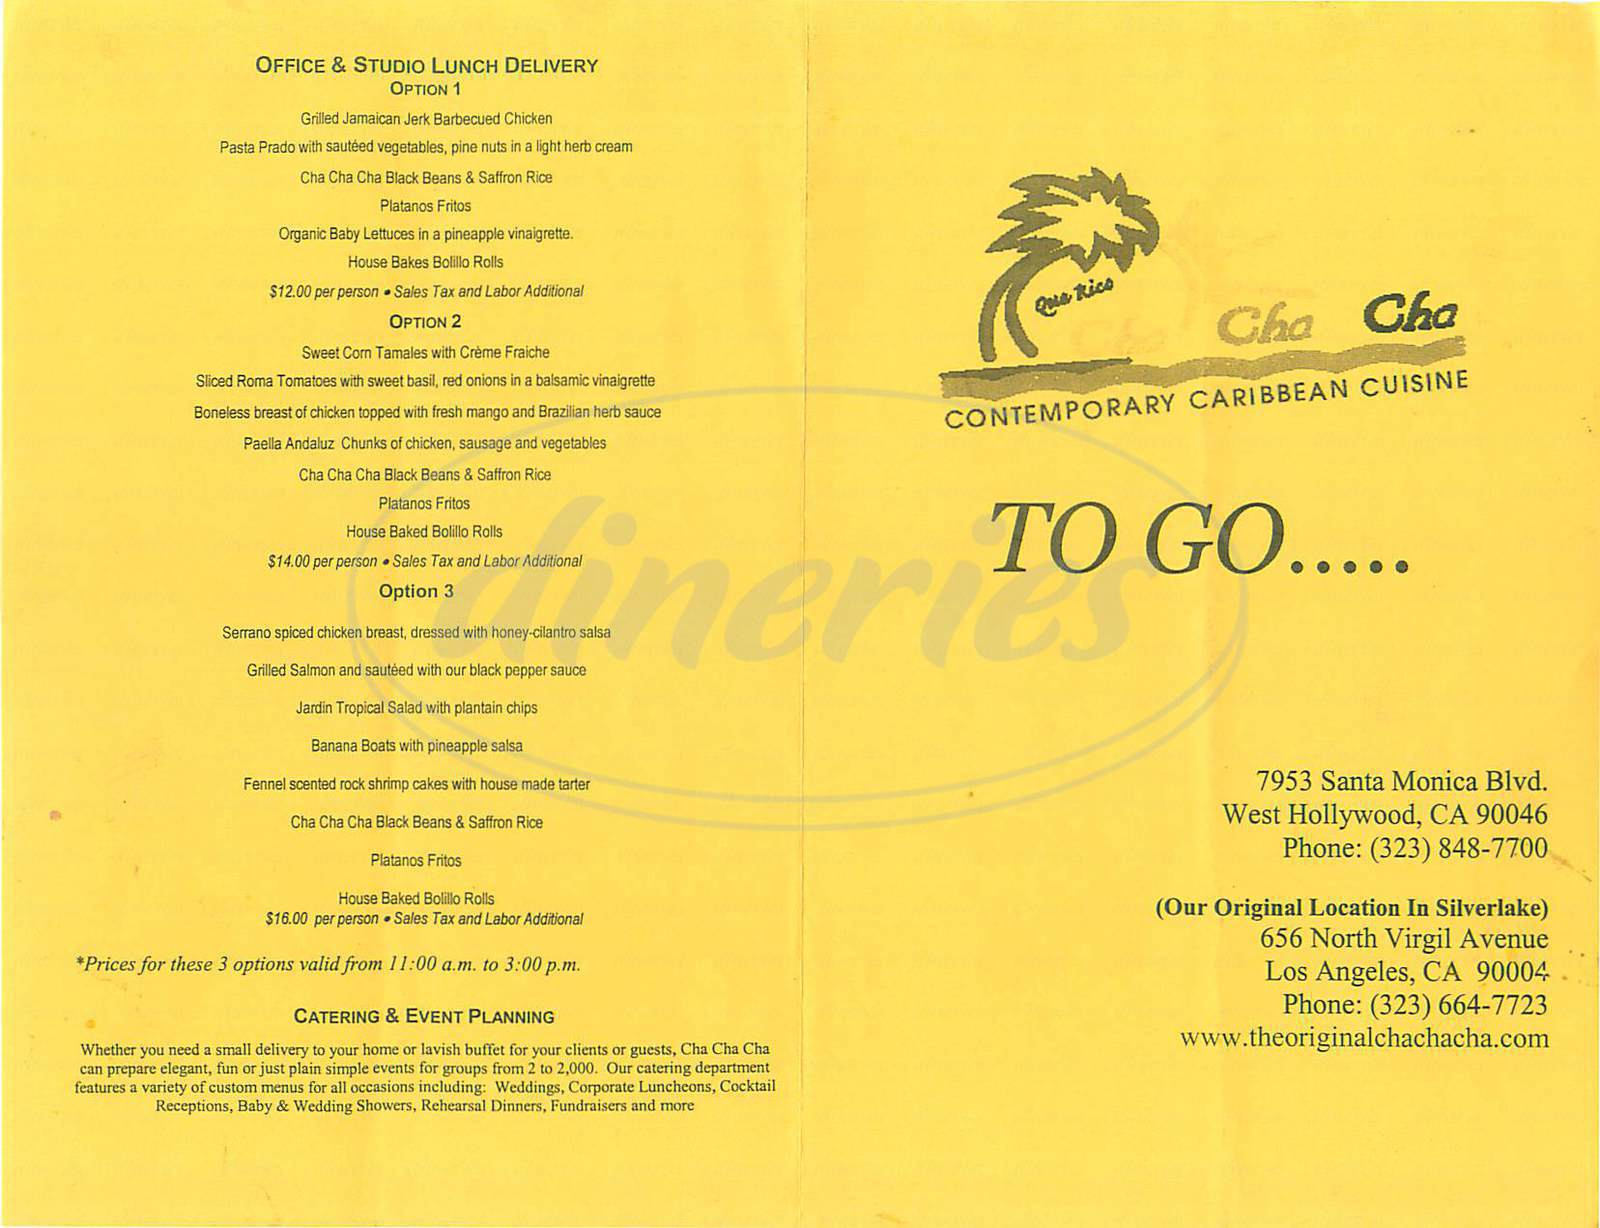 menu for Cha Cha Cha Caribbean Cuisine